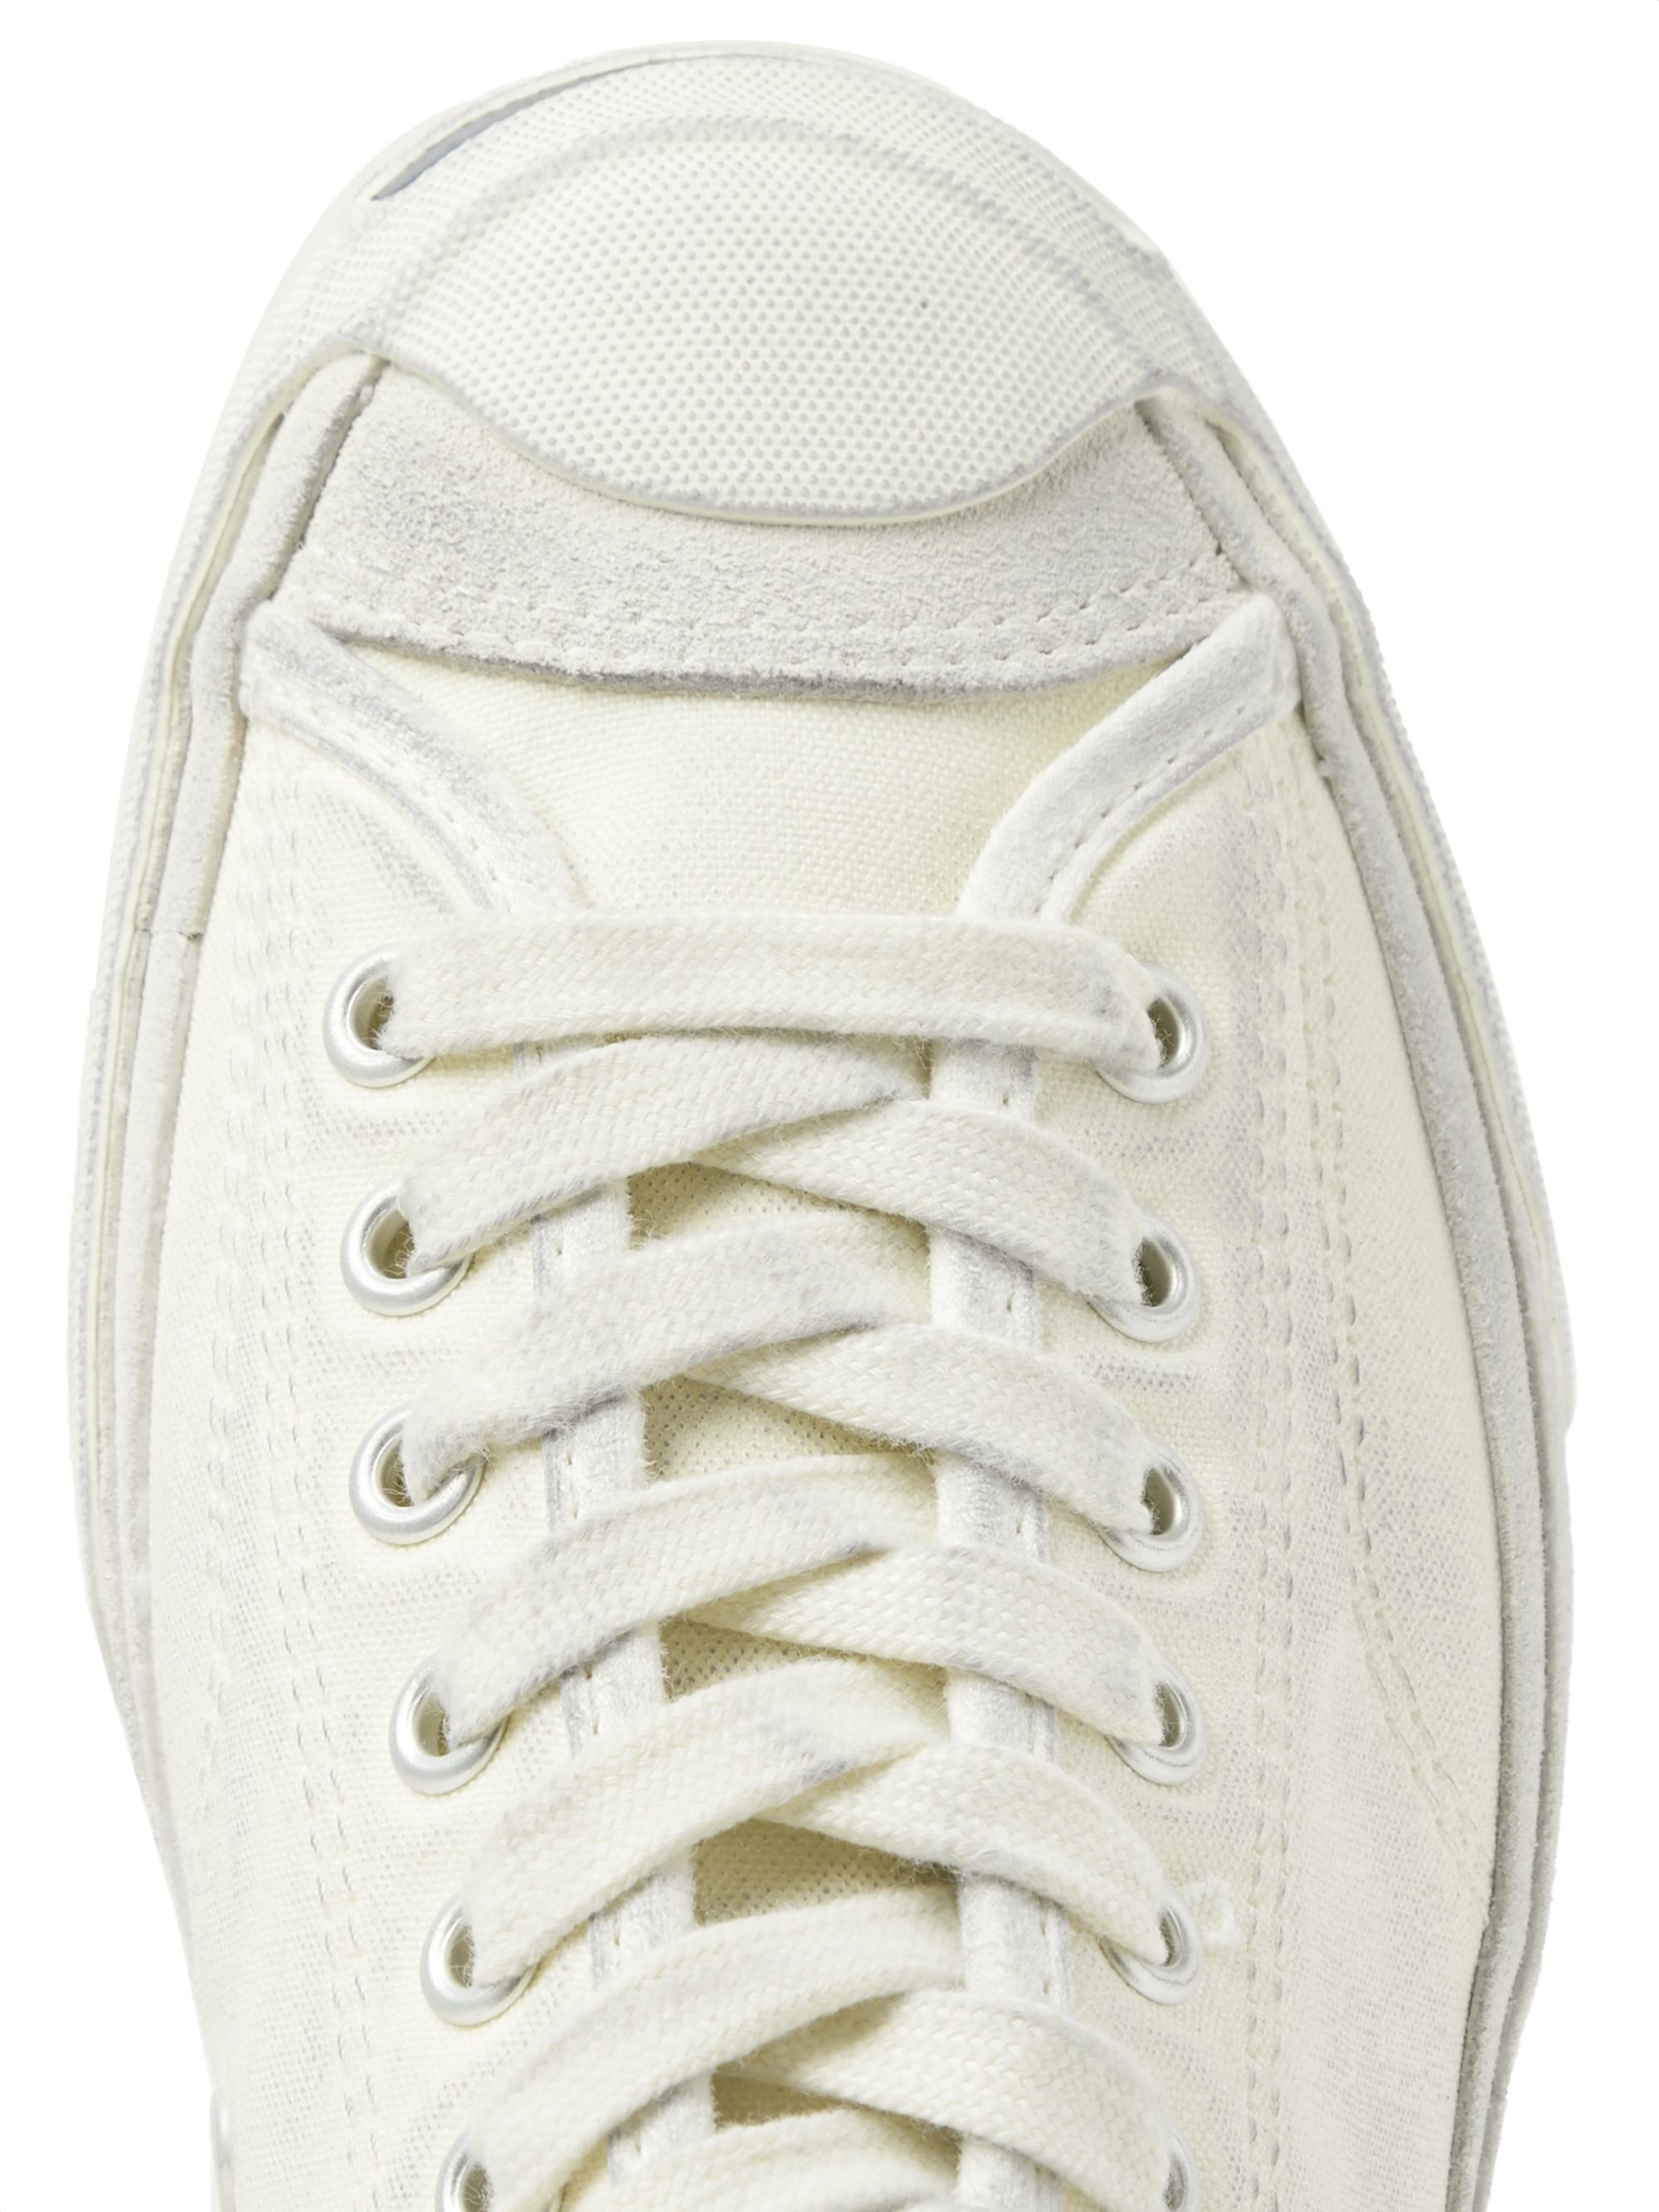 Converse Jack Purcell OX Distressed Suede-Trimmed Canvas Sneakers